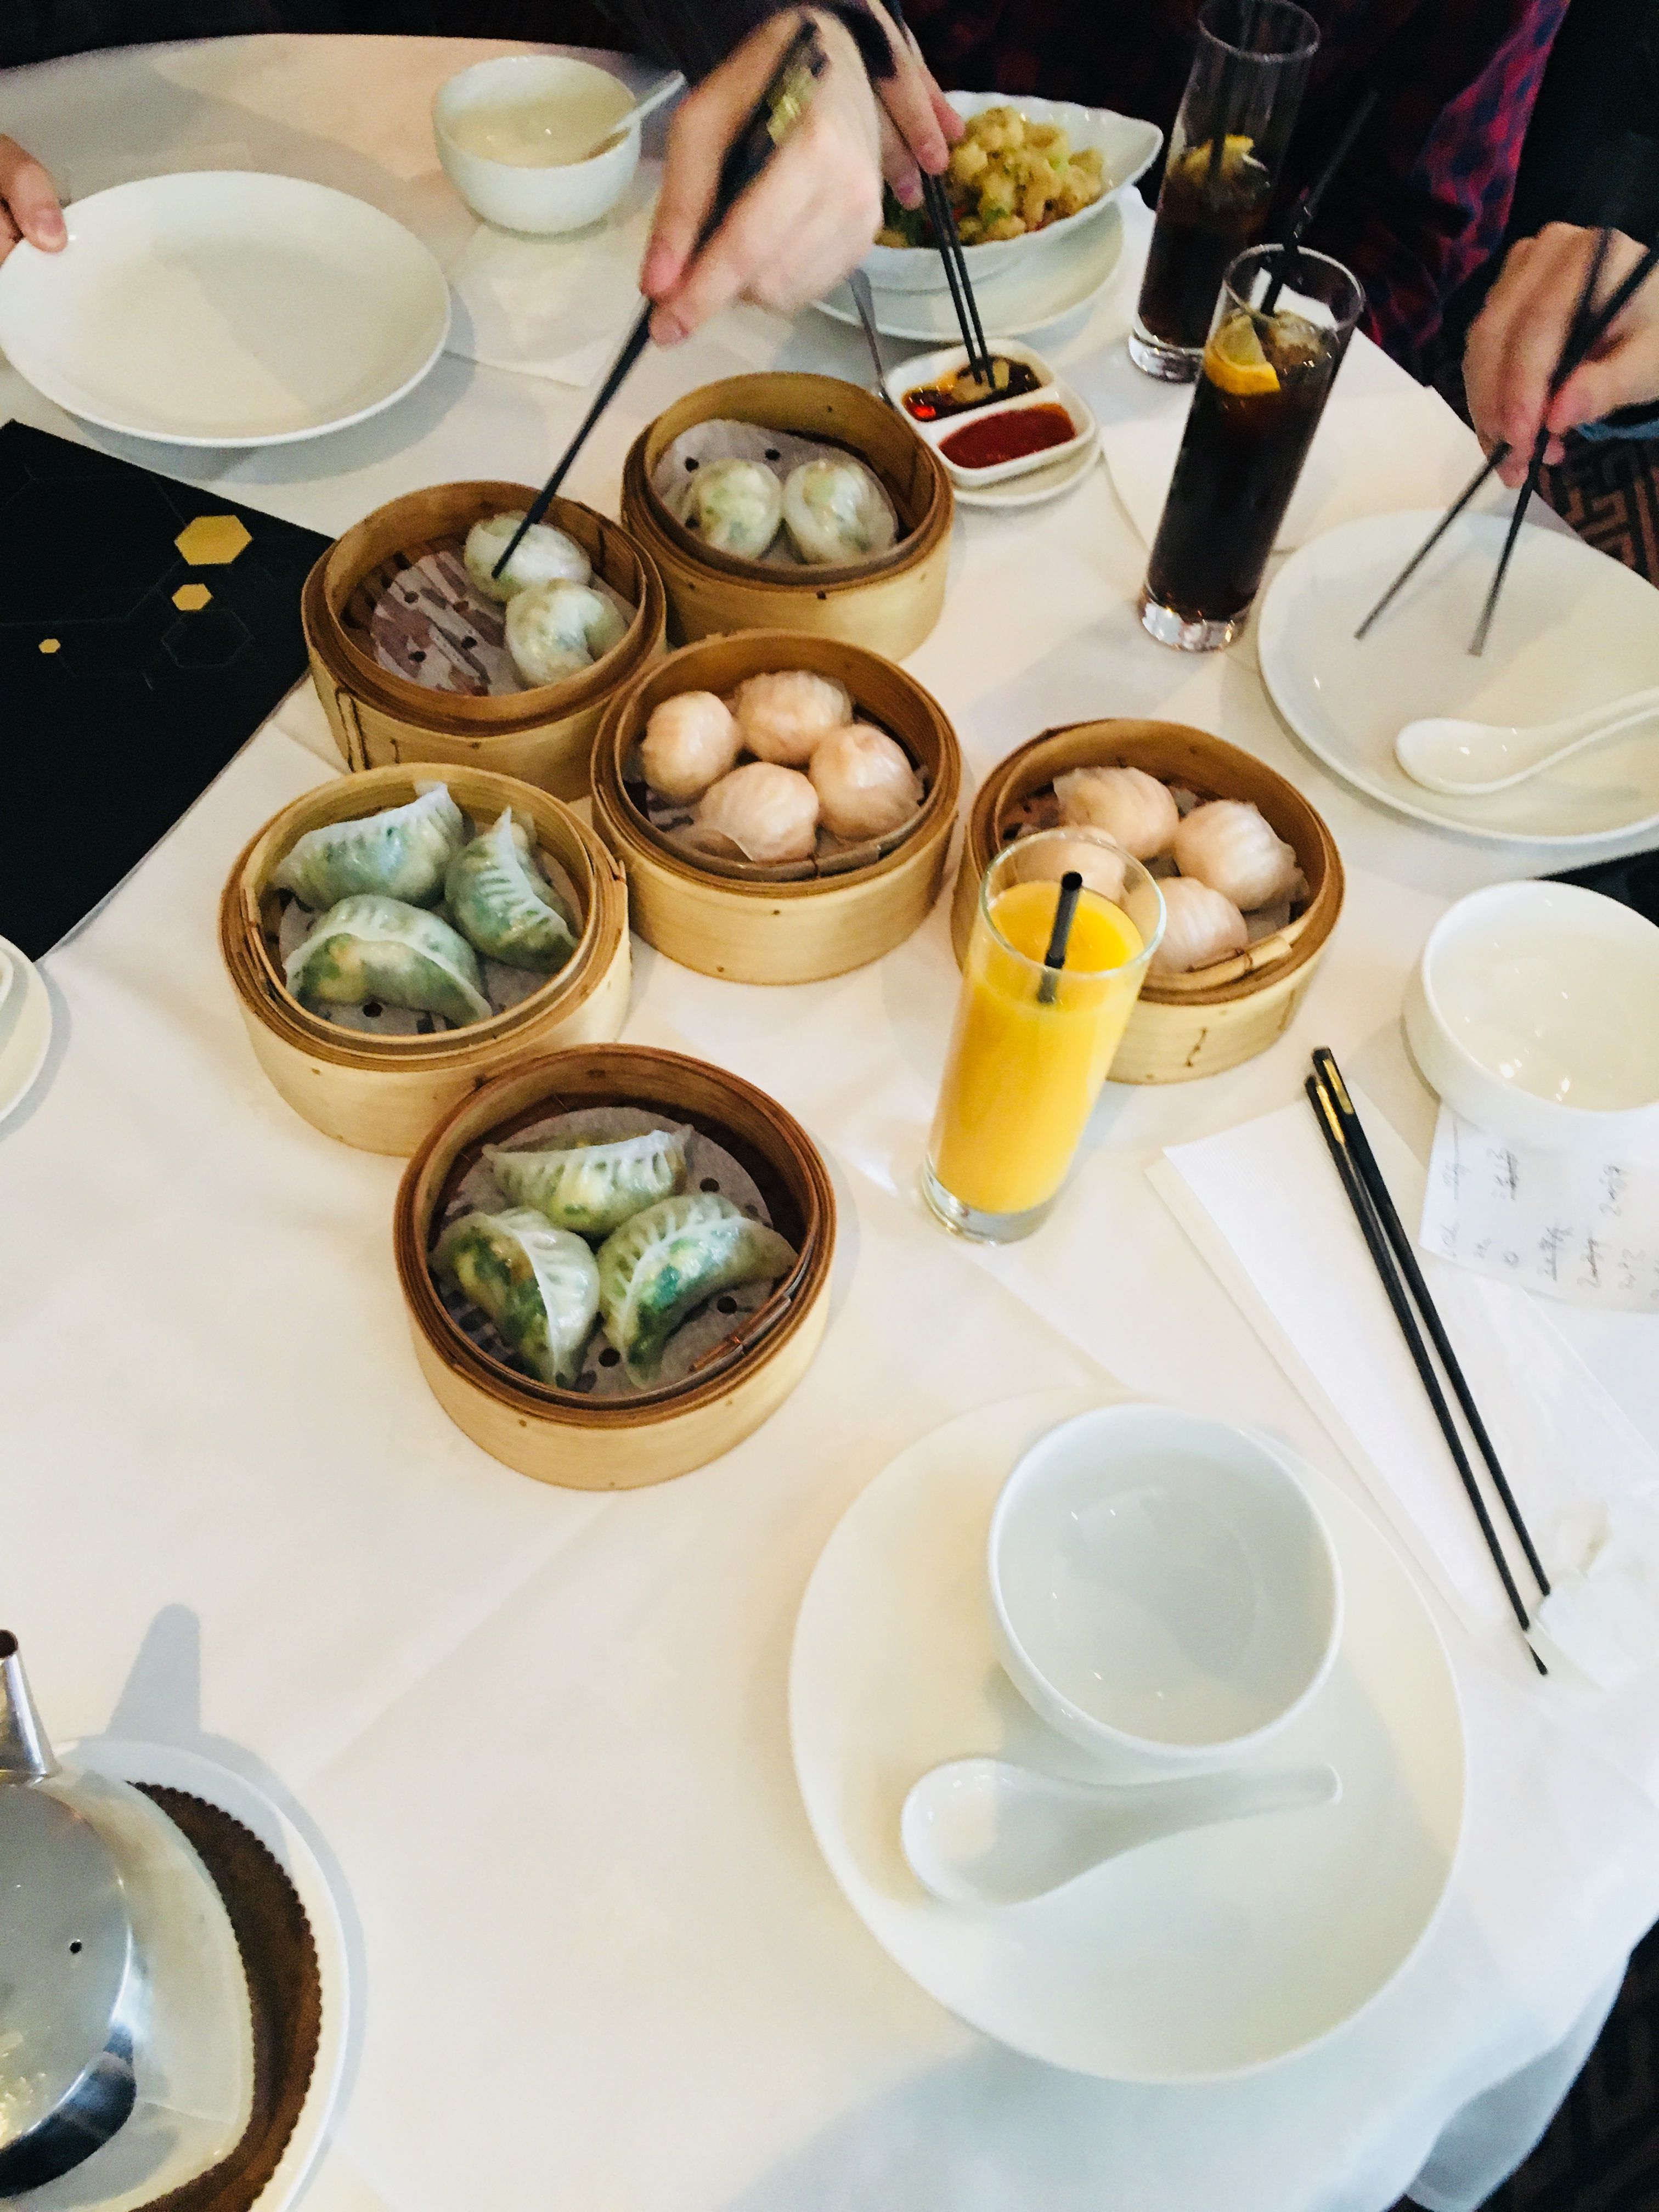 Chinese Food Royal China London With Images Food Chinese Food Tableware